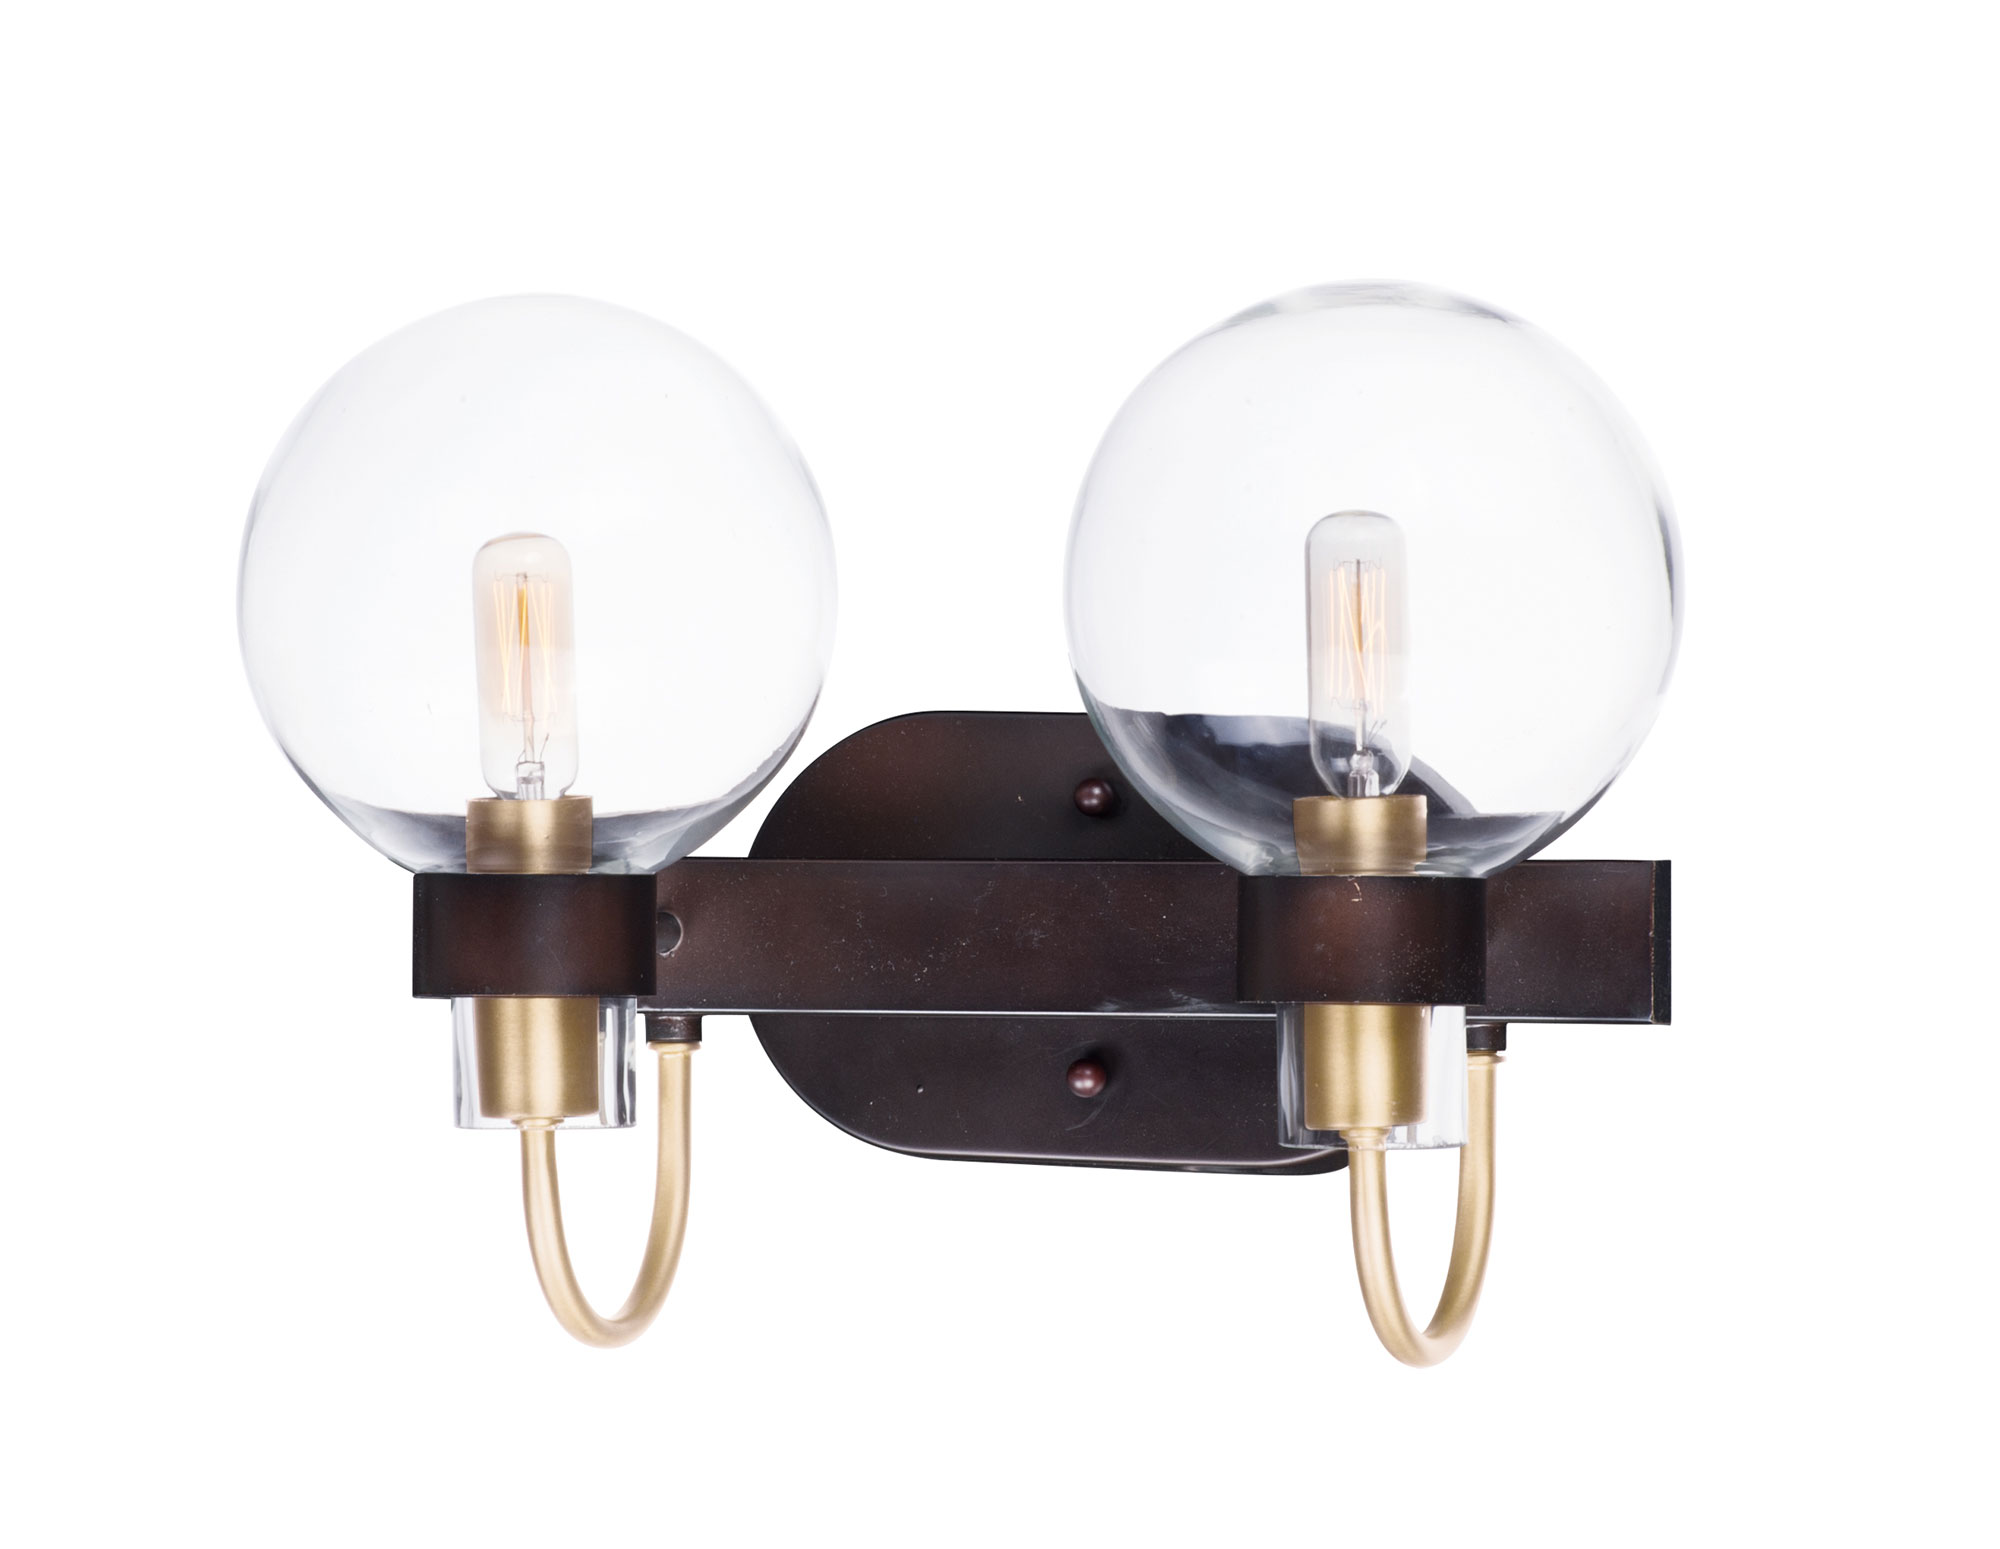 Bauhaus Bathroom Vanity Light By Maxim